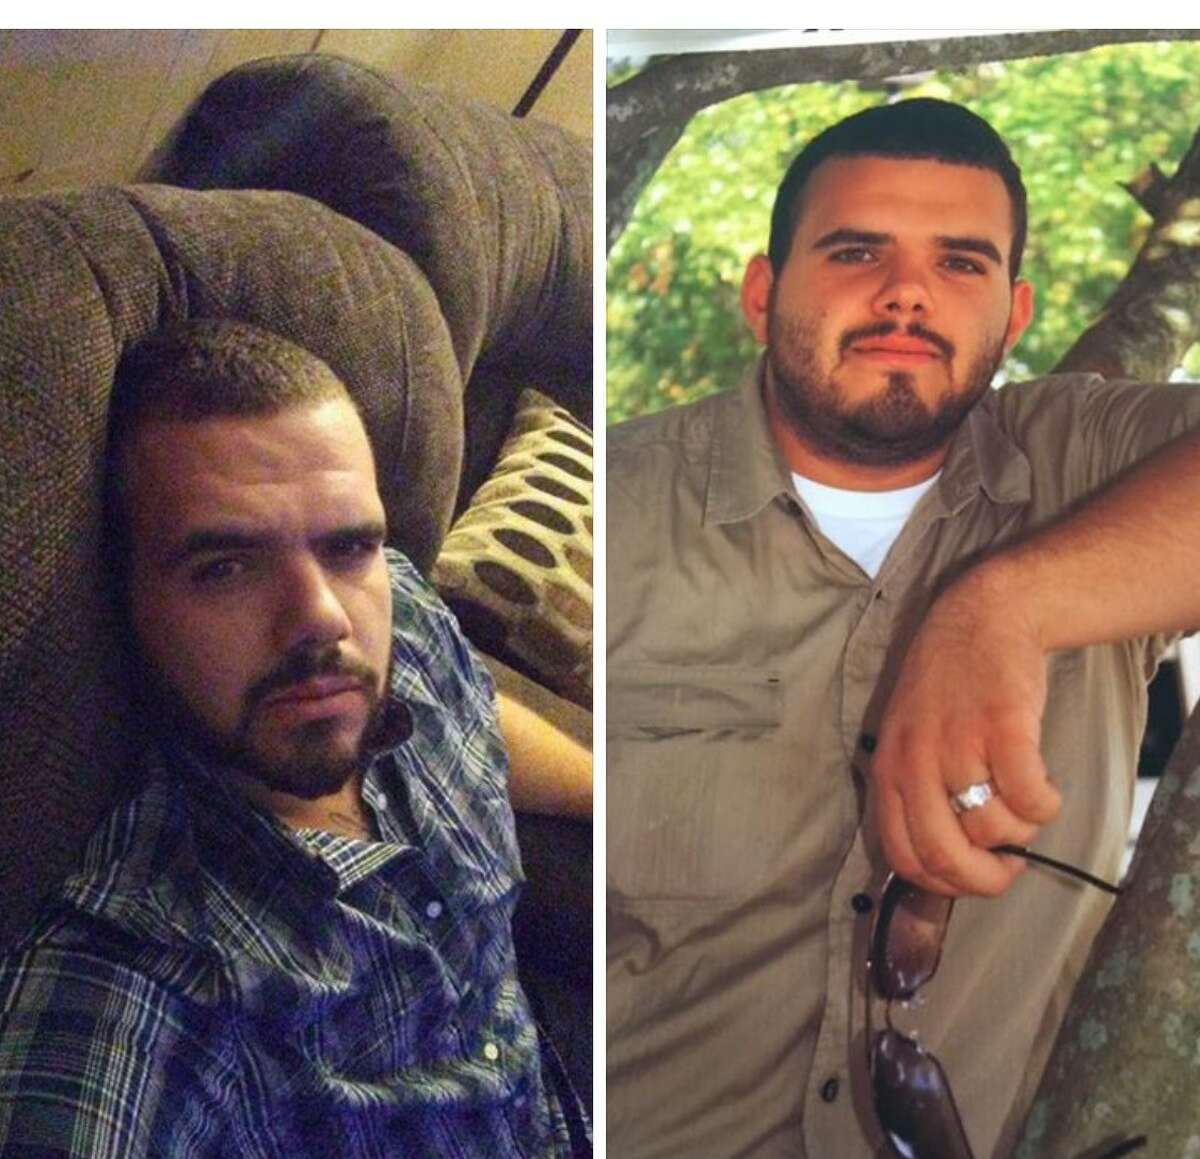 Rodrigo Jorge De le Garza, 28, of Houston was last seen on Jan. 18, 2017. His relatives attended Missing in Harris County Day on June 10, 2017 to submit DNA samples that may solve his case.